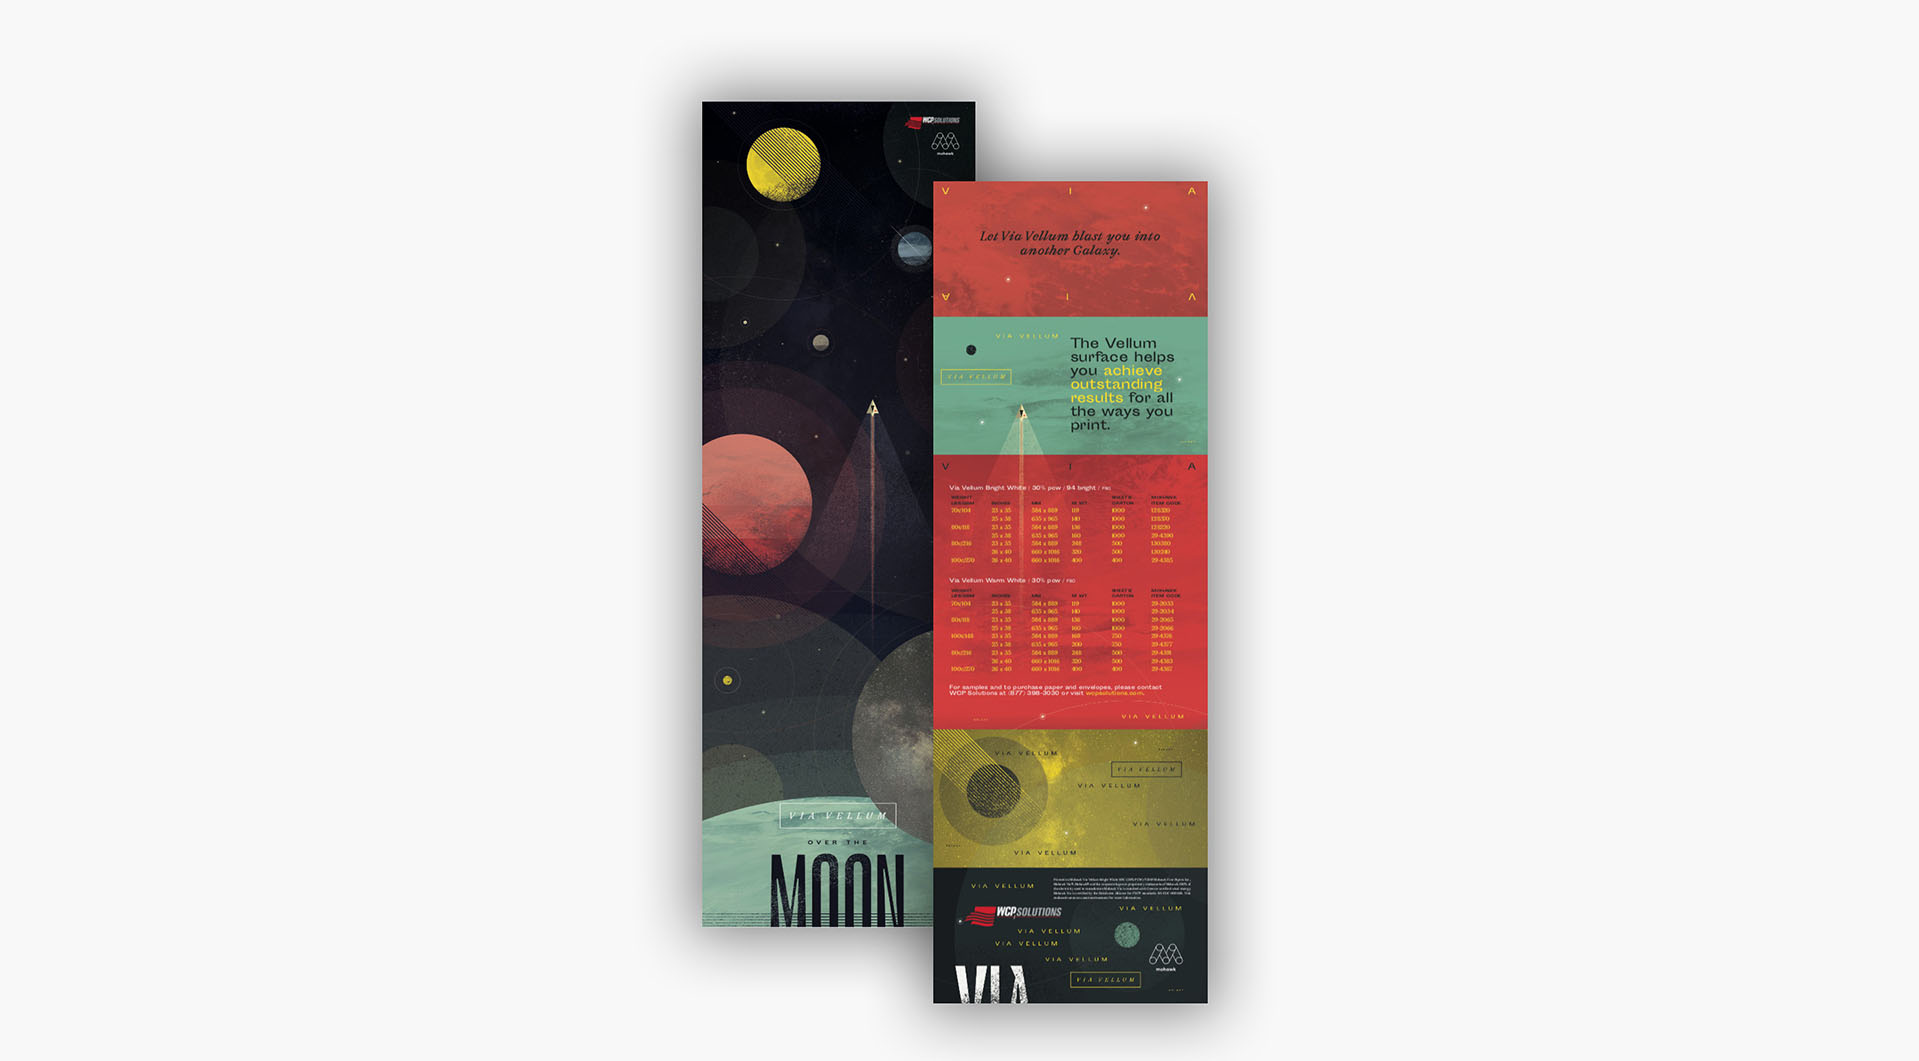 Over the moon - Limited Edition Poster by Mohawk and WCP Solutions